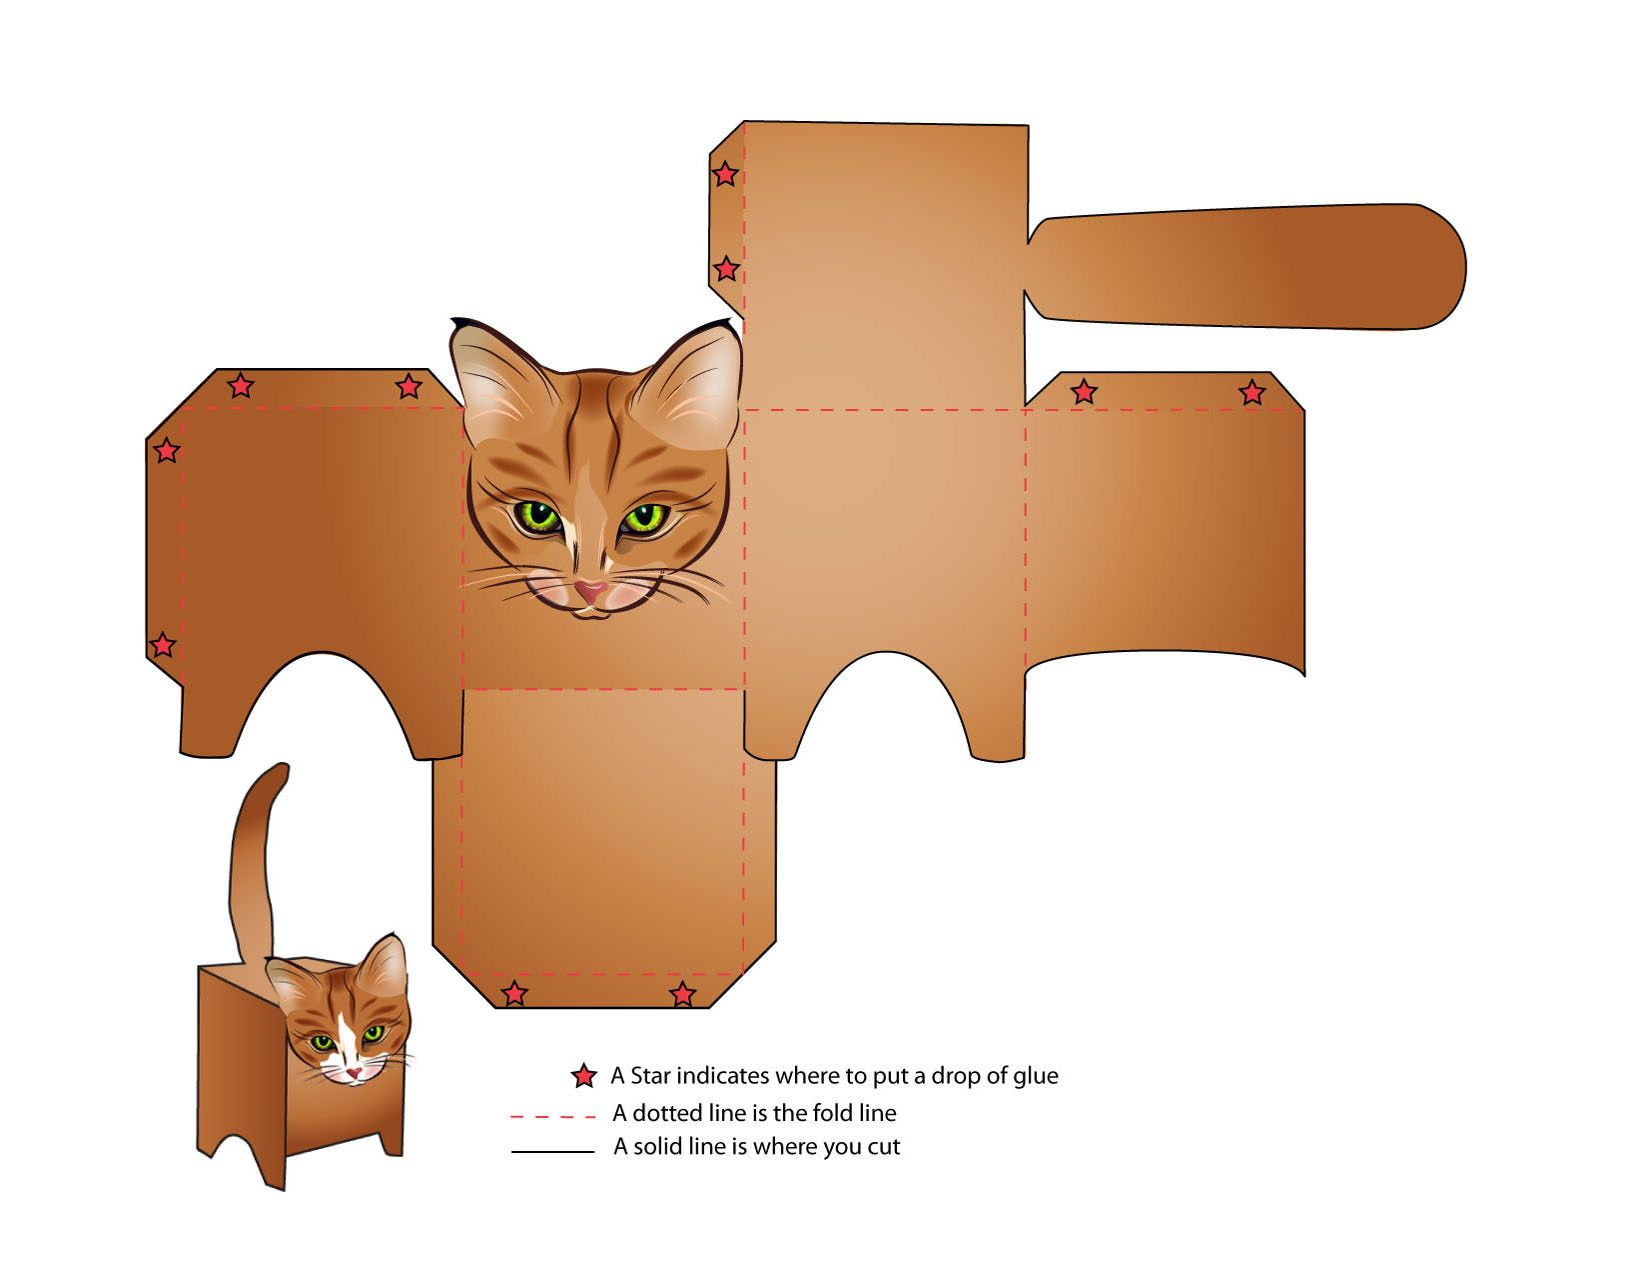 Learn How To Make a Toy Dog and a Toy Cat